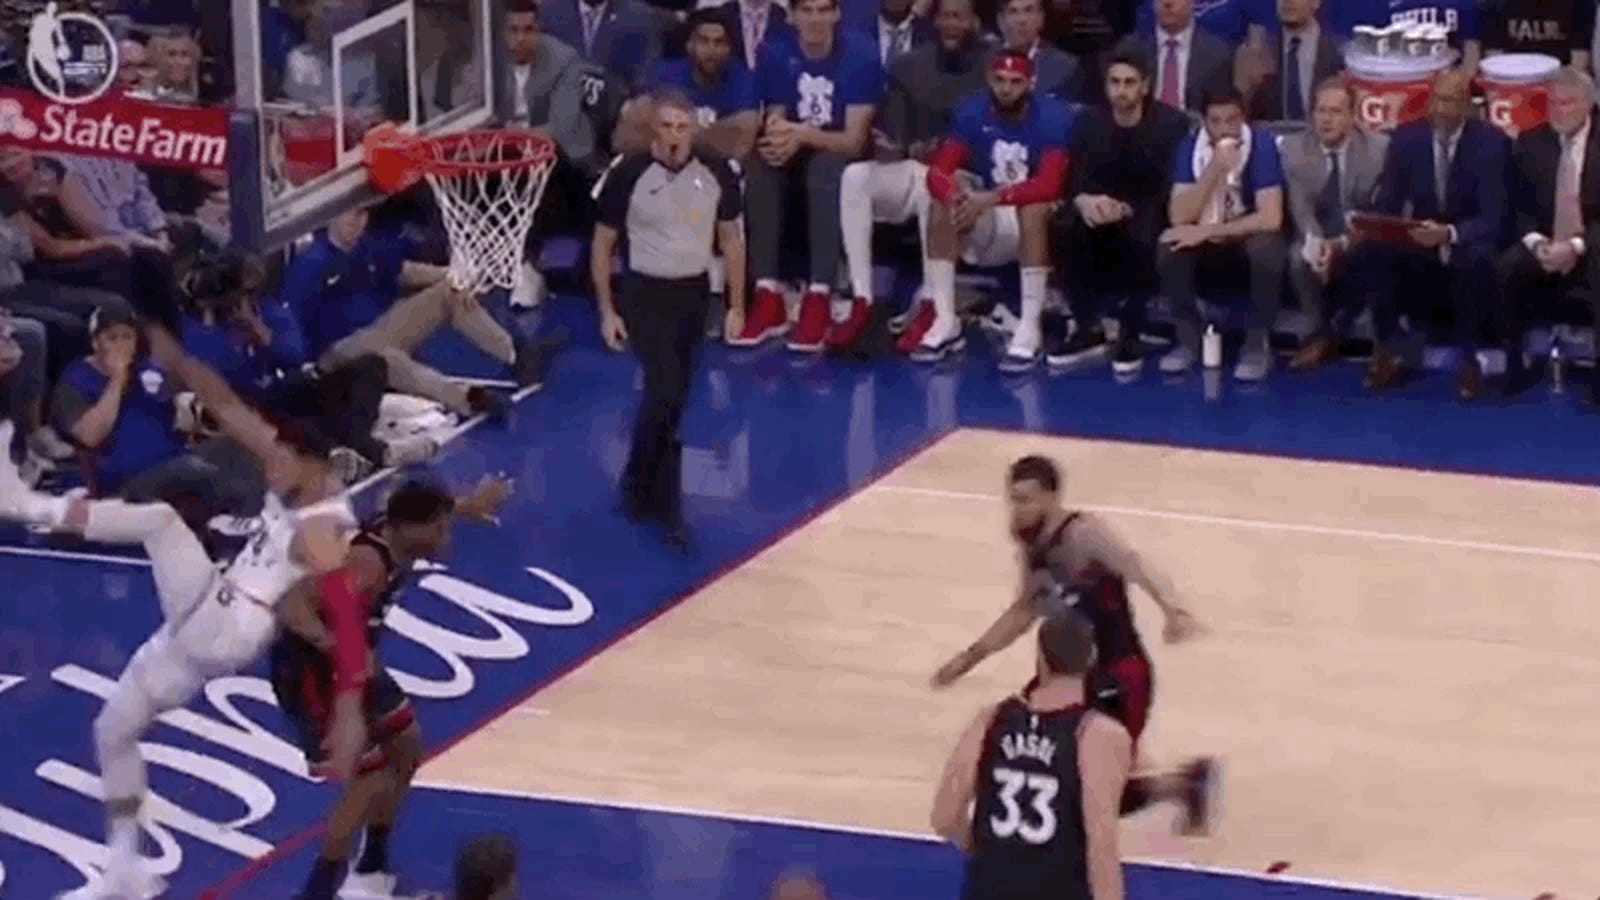 Ben Simmons Gets Away With Elbowing Kyle Lowry In The Dick And Balls - Deadspin